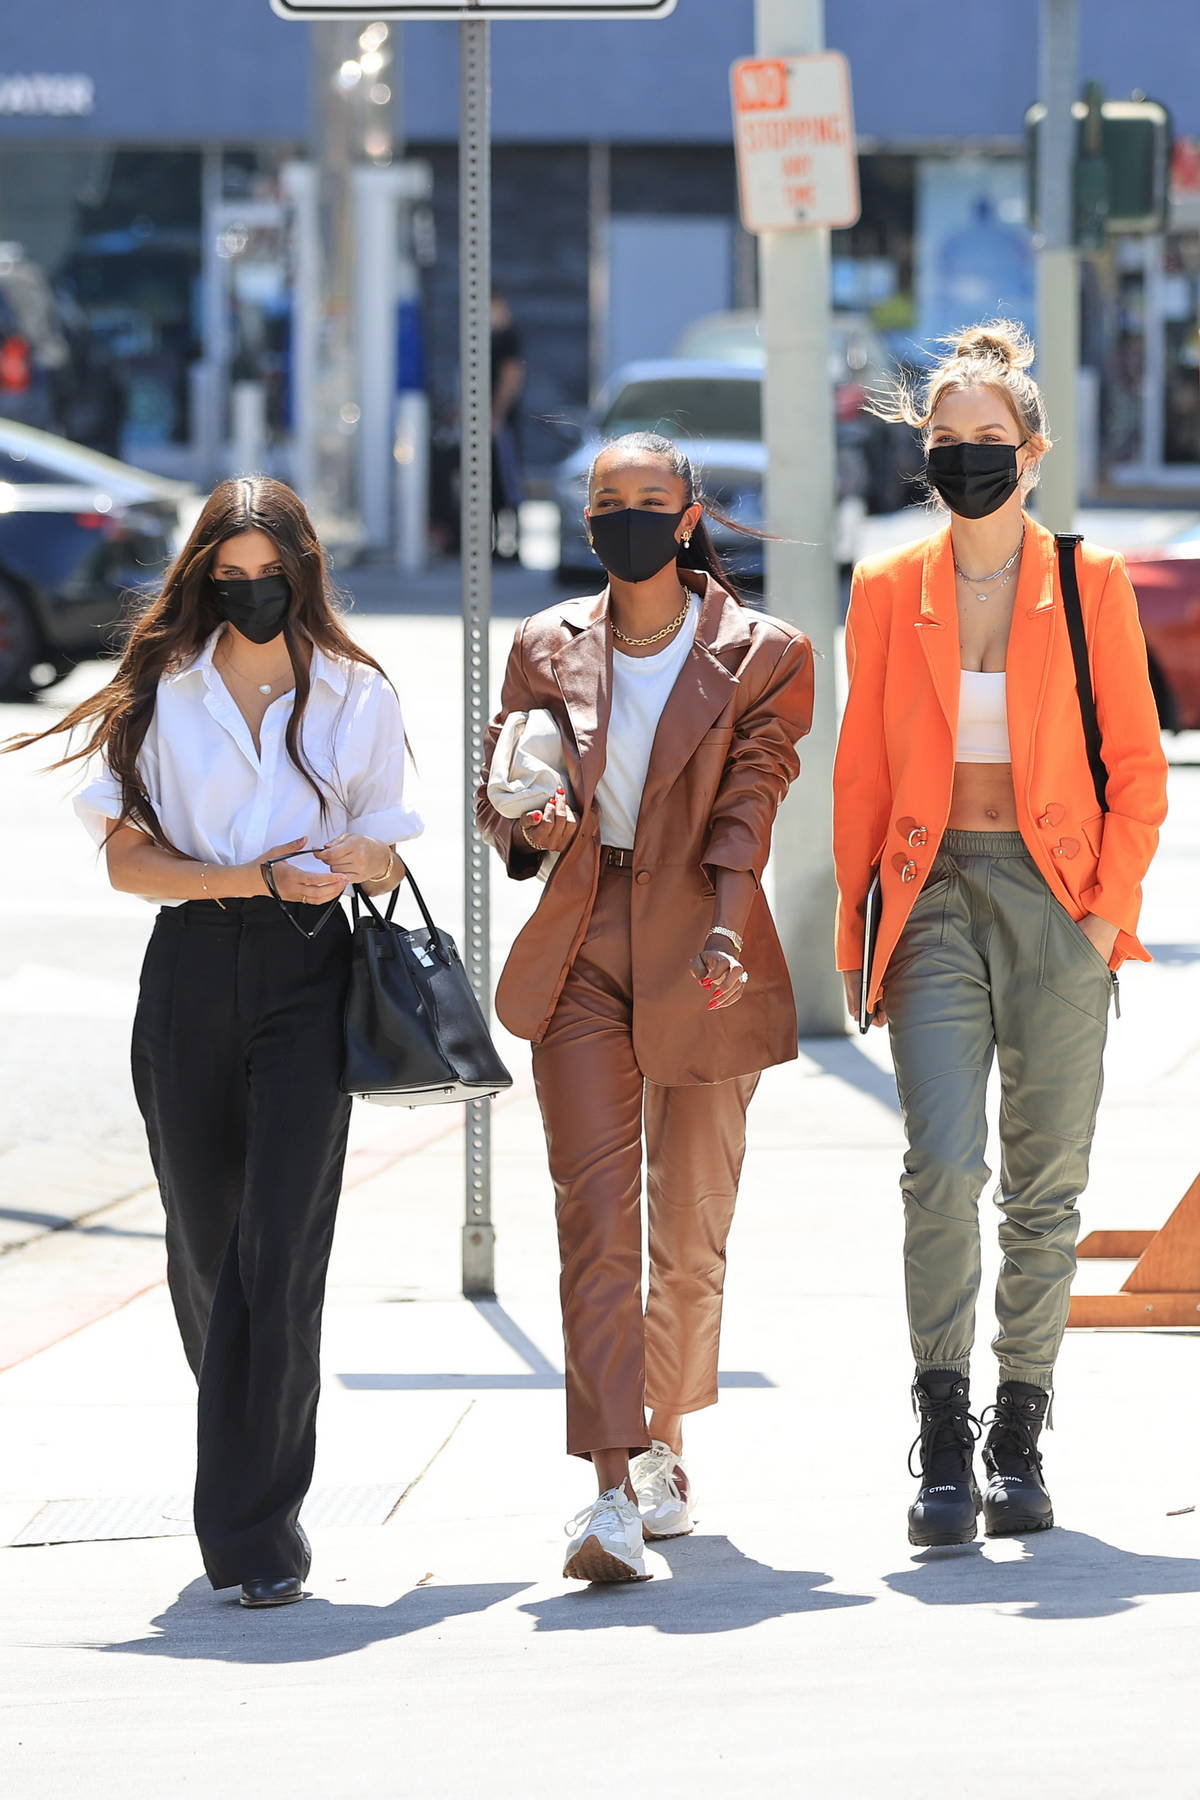 Josephine Skriver, Jasmine Tookes, and Sara Sampaio step out together for lunch in Los Angeles